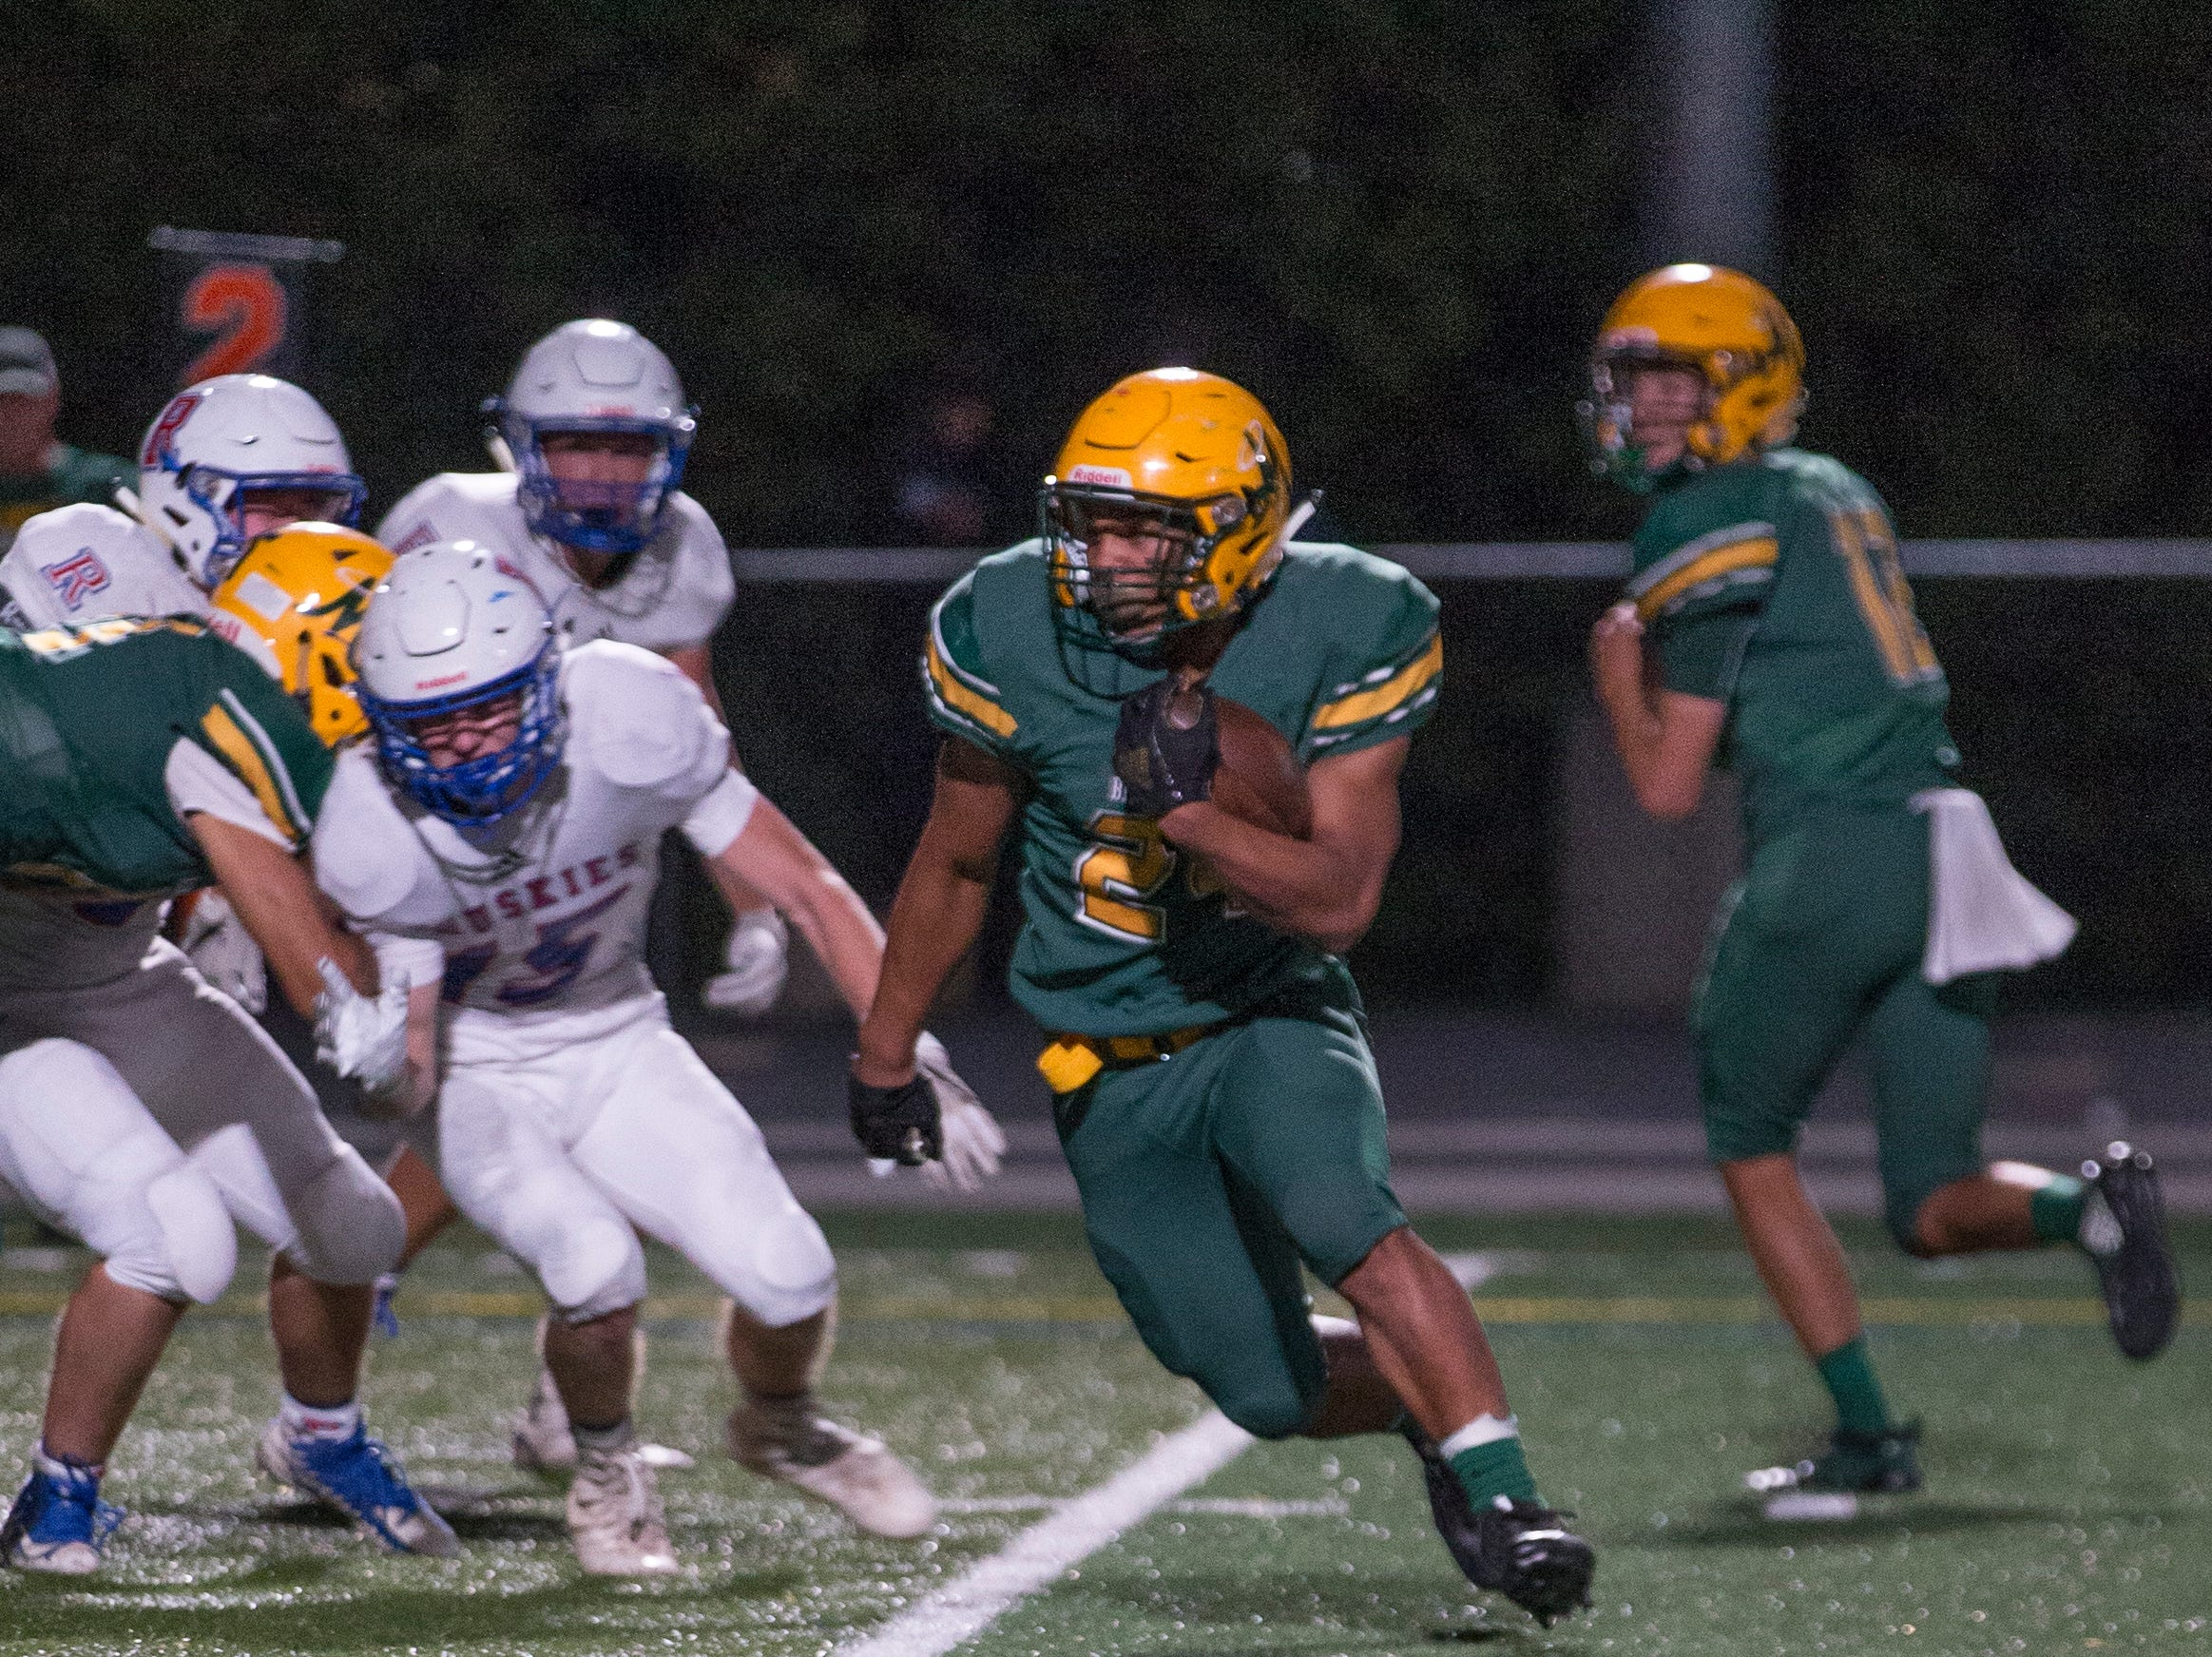 Prep football: Reno at Bishop Manogue